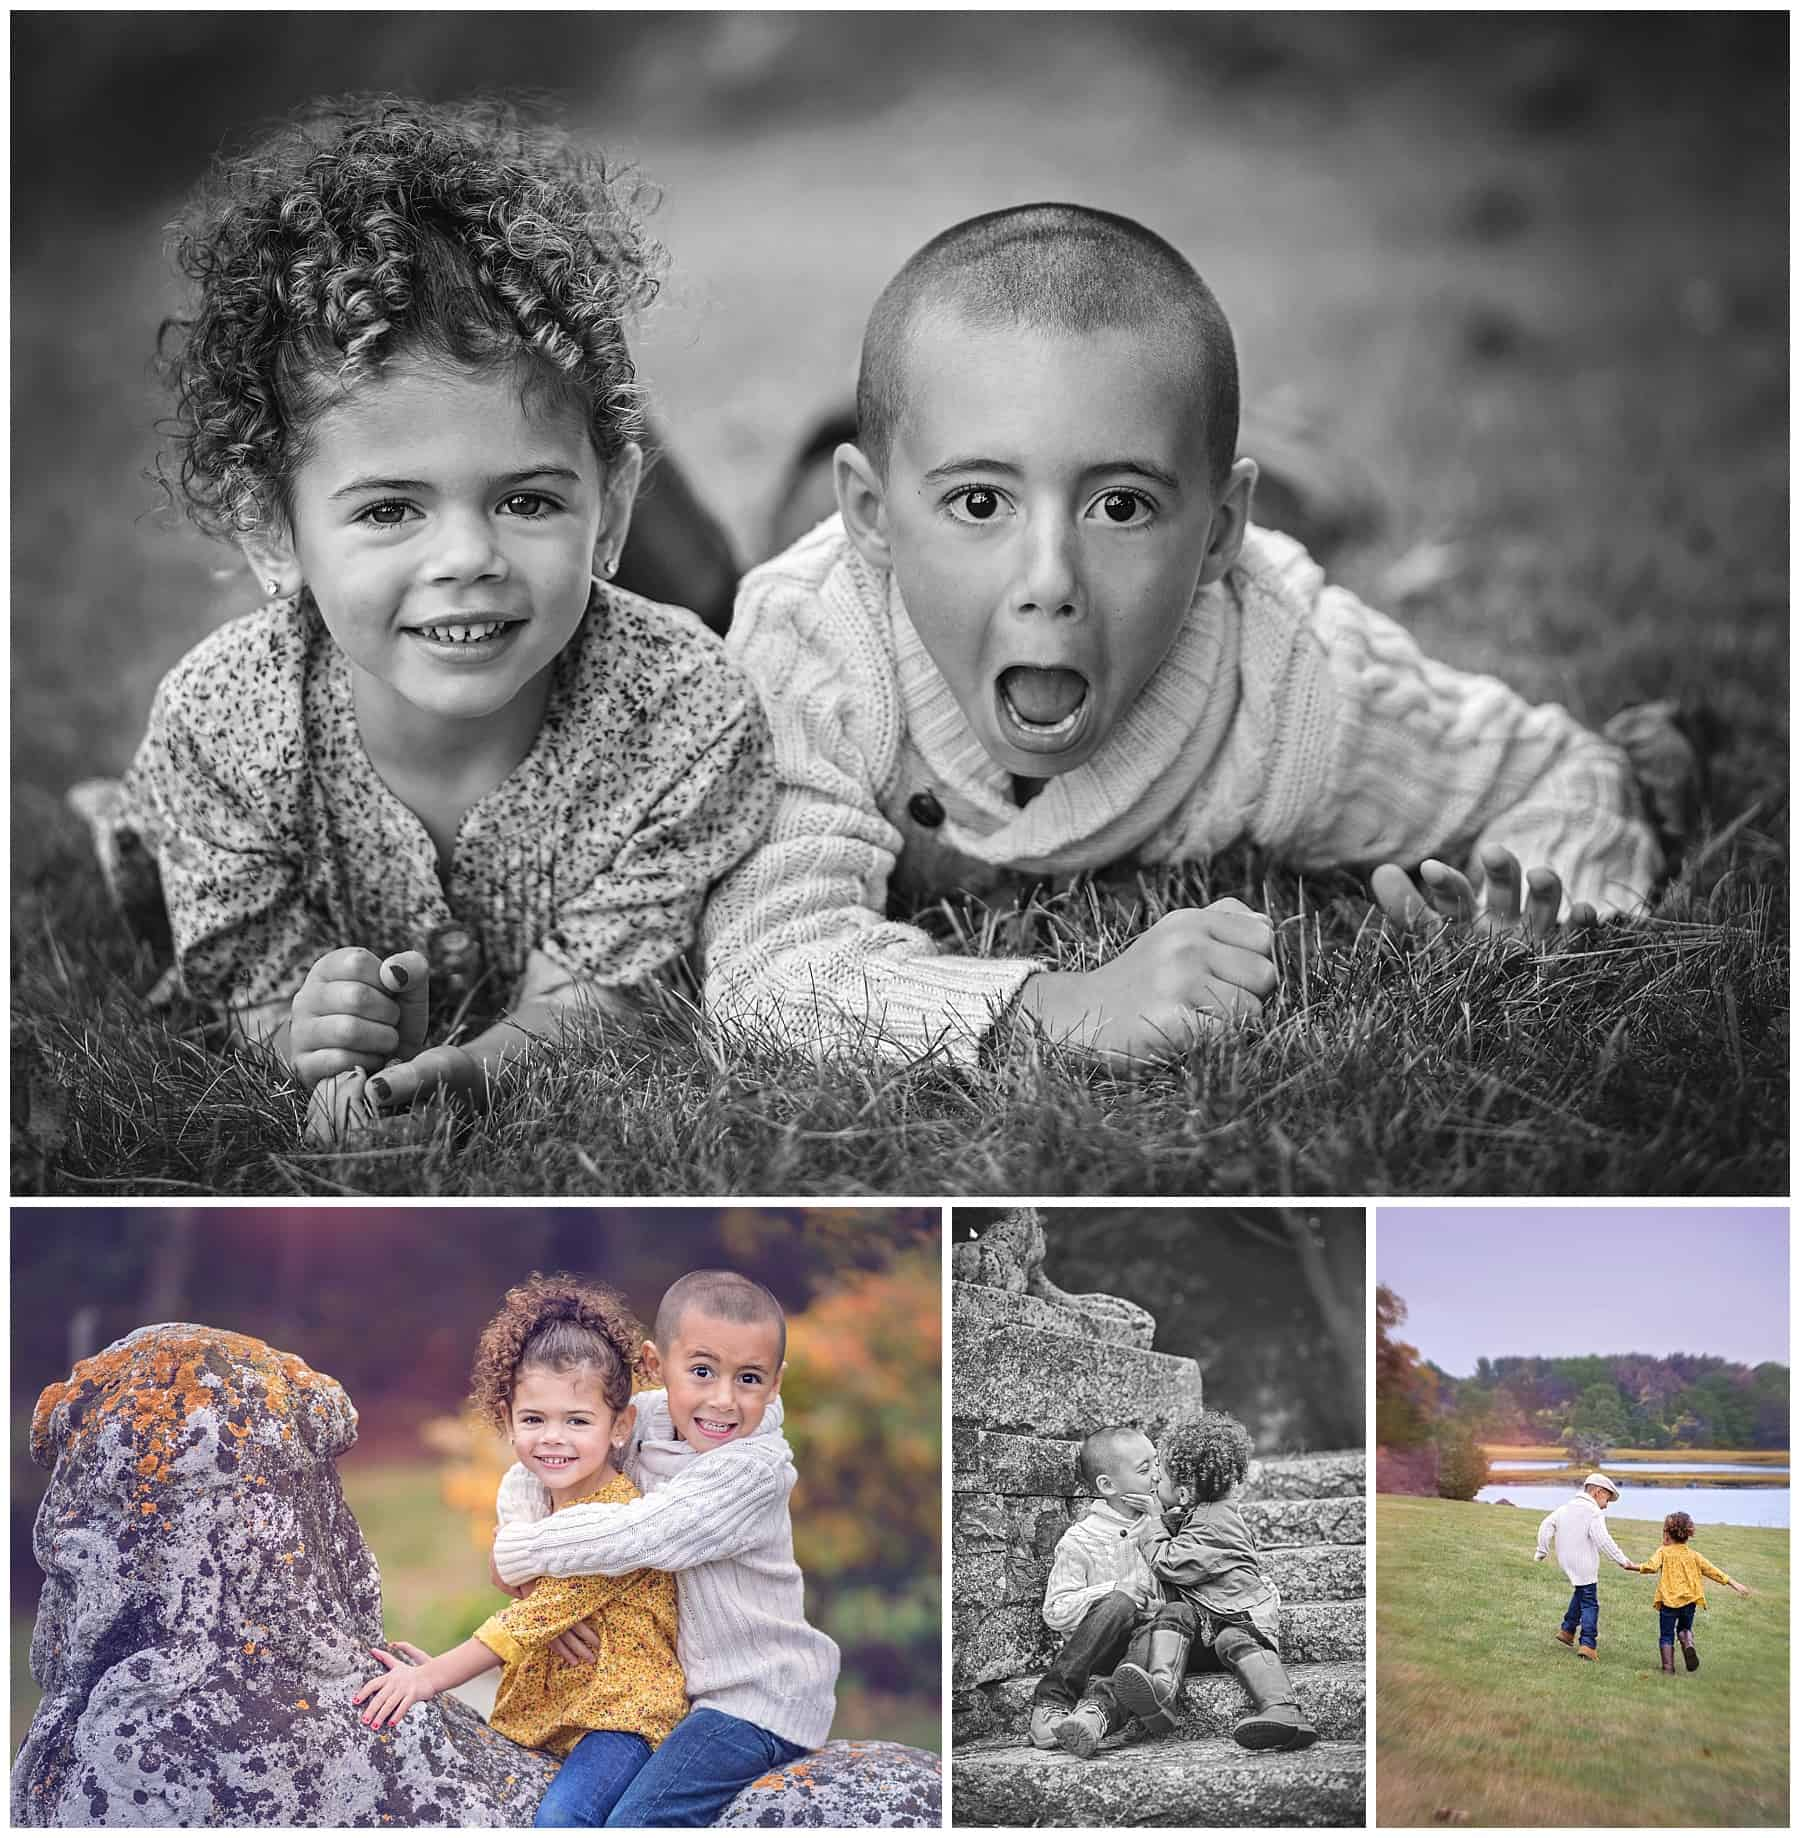 family photos, family photography, candid photography, kids